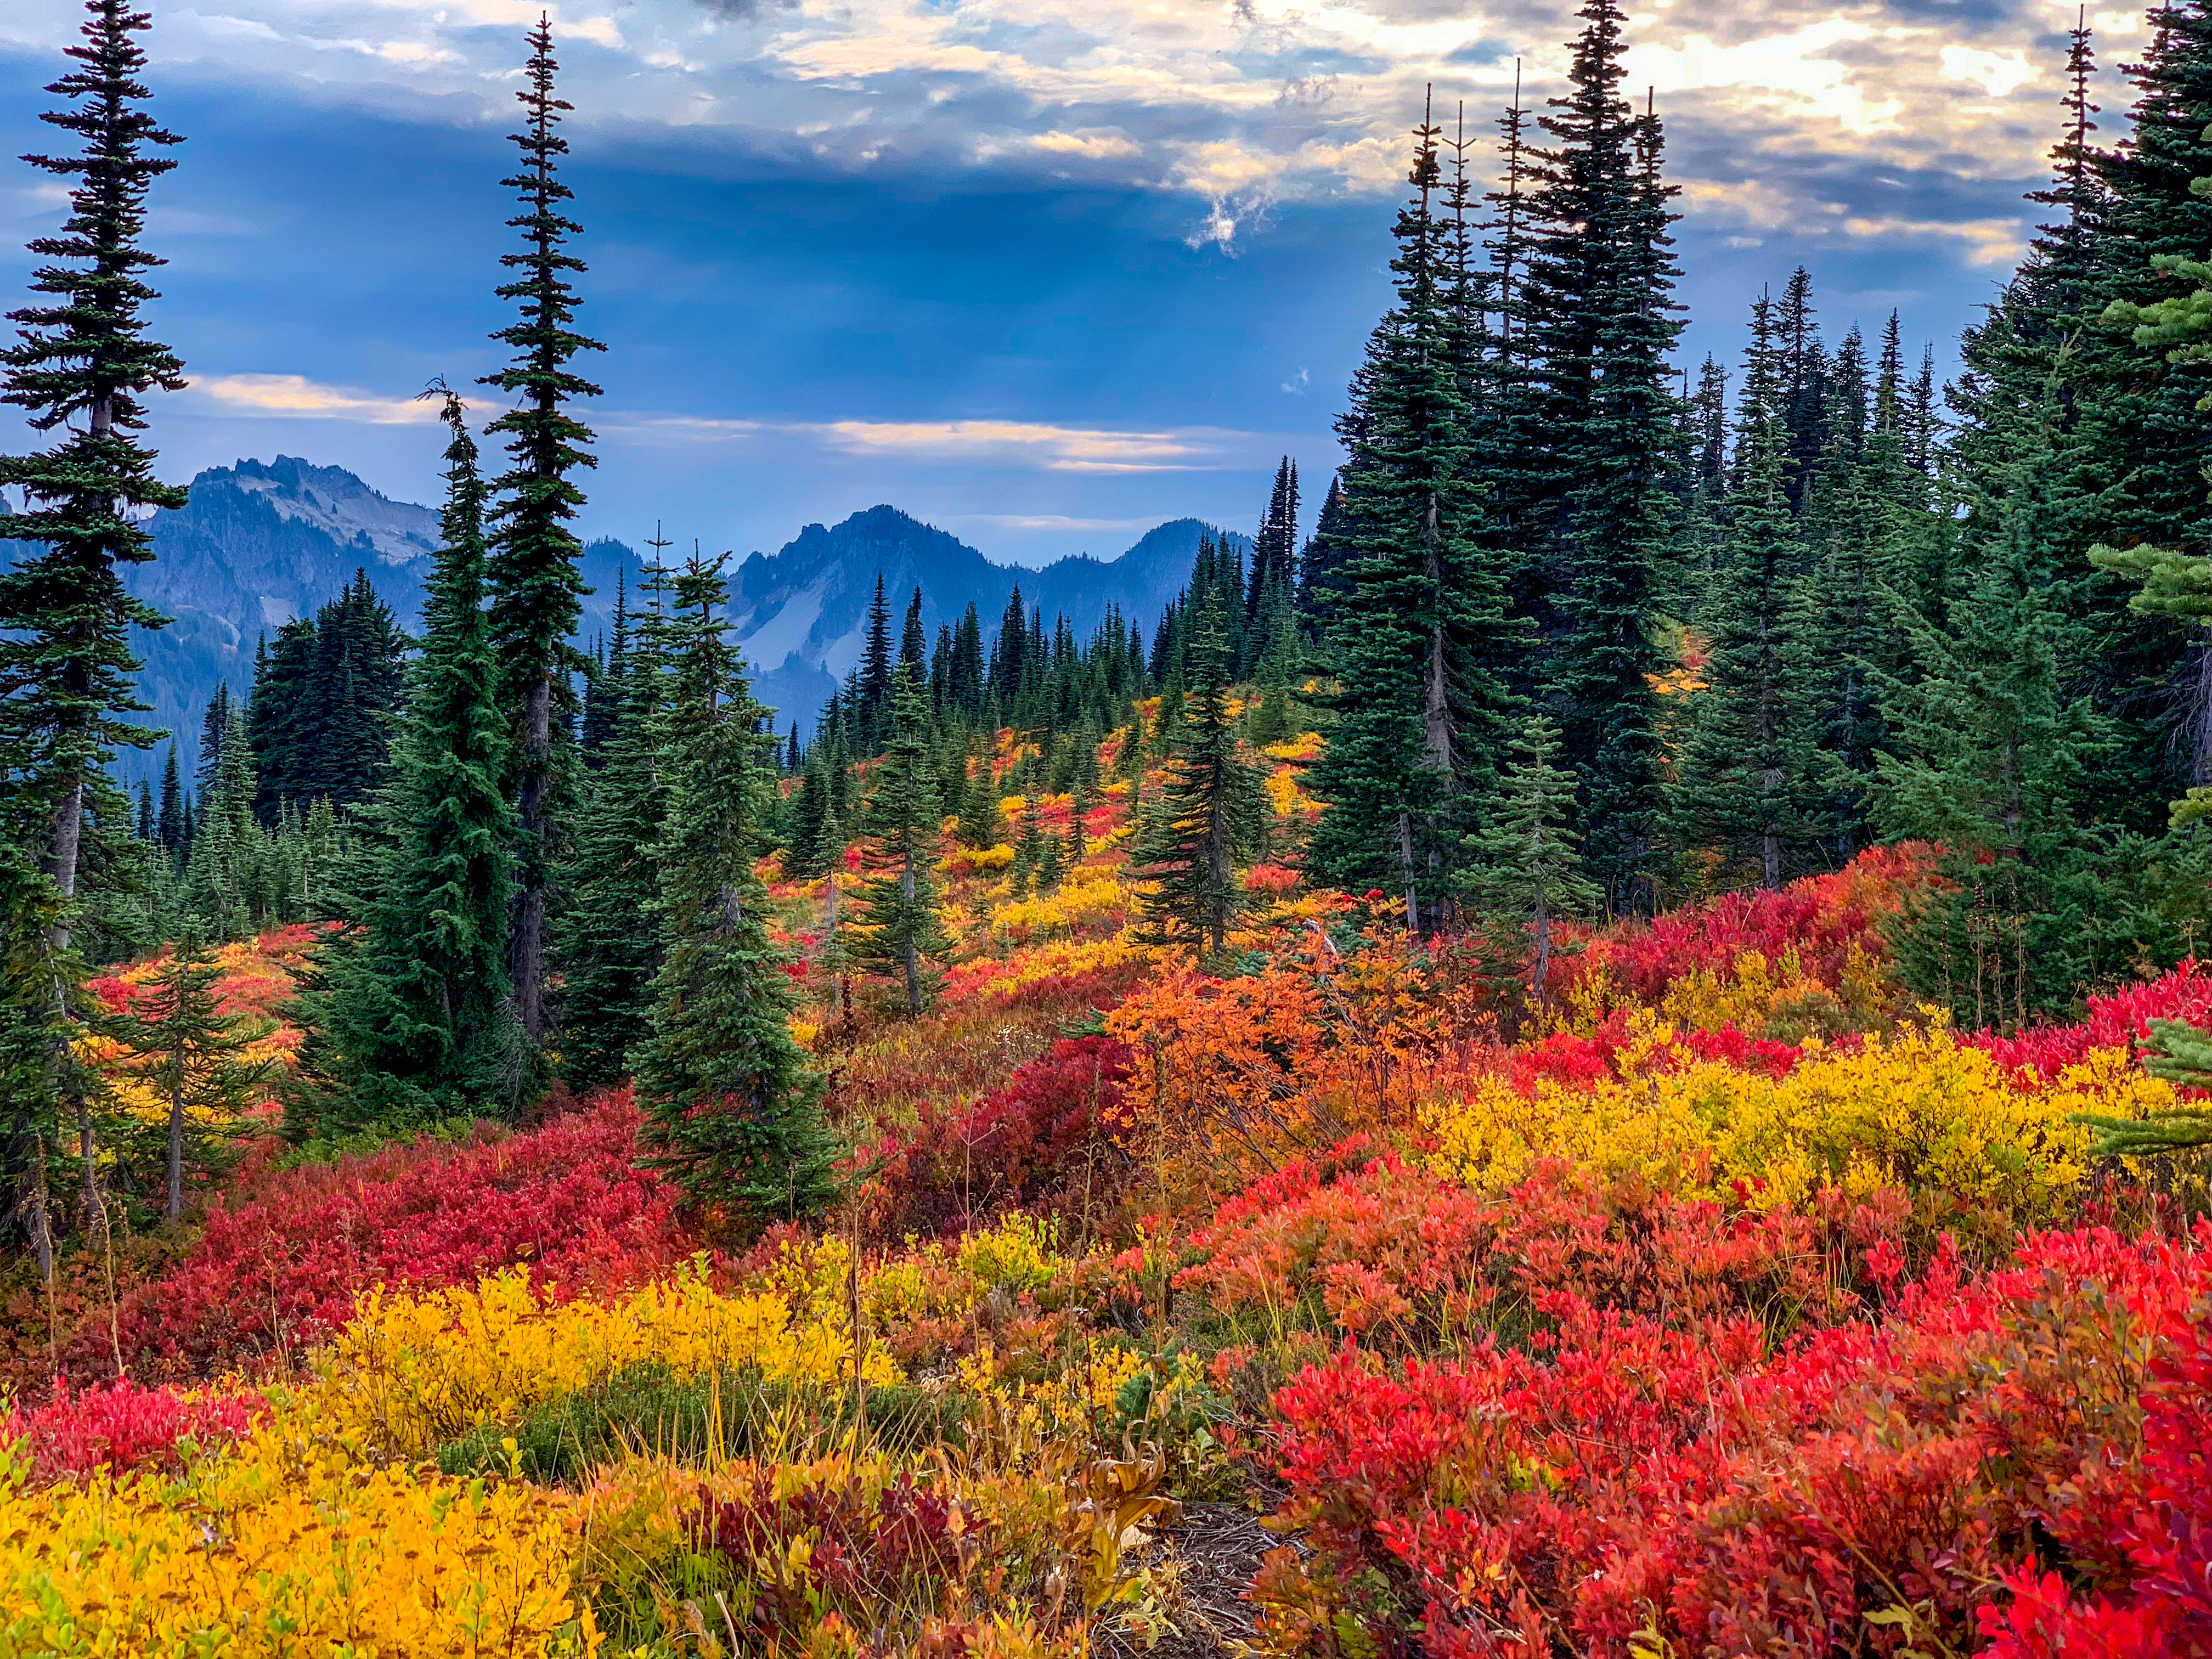 A blanket of low red, yellow, and orange brush is below evergreen trees, with mountains and cloudy skies in the background.